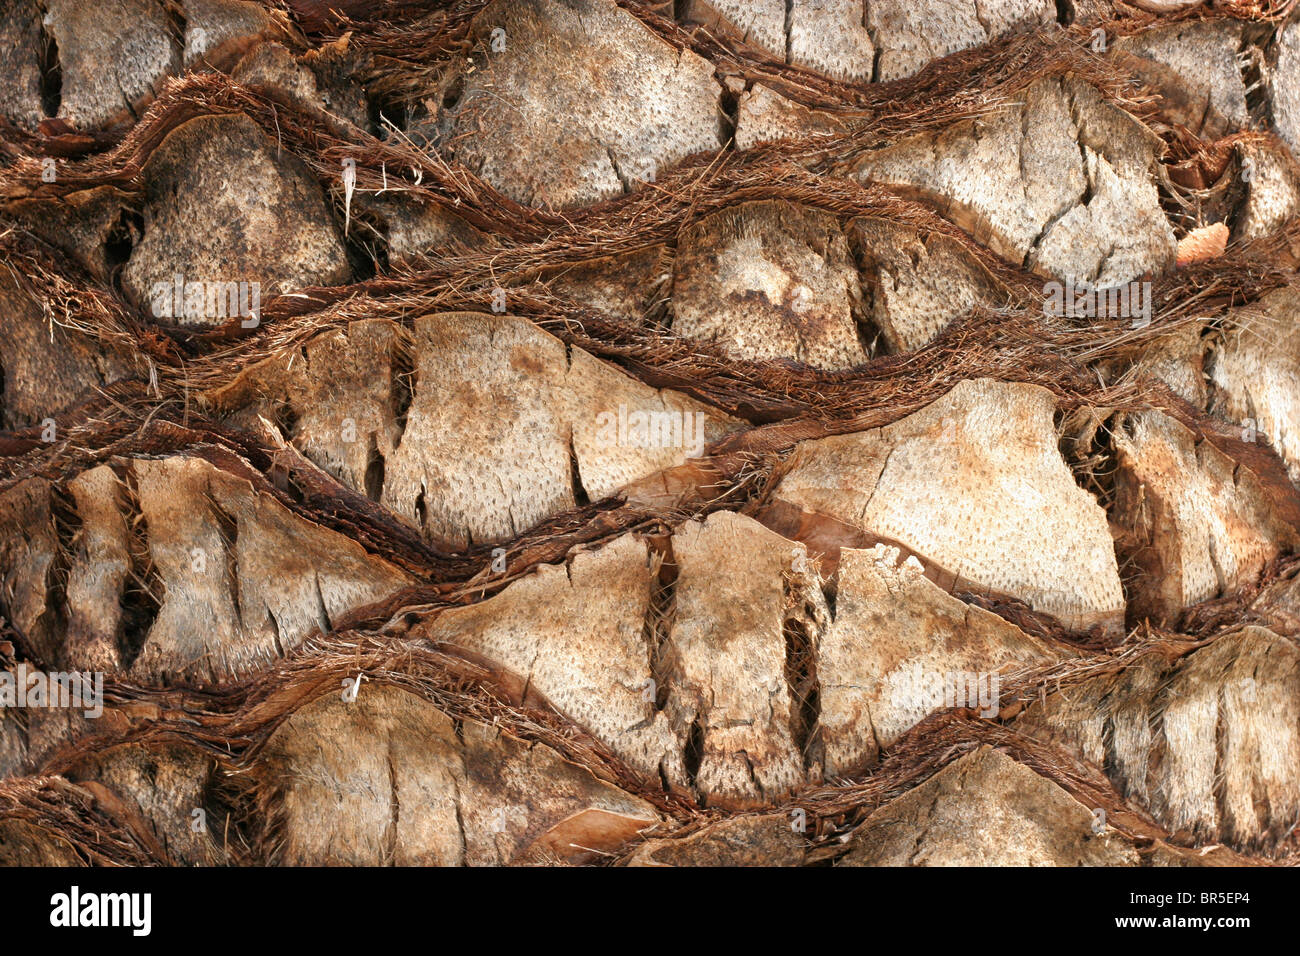 Patterns in the bark of a palm tree - Stock Image